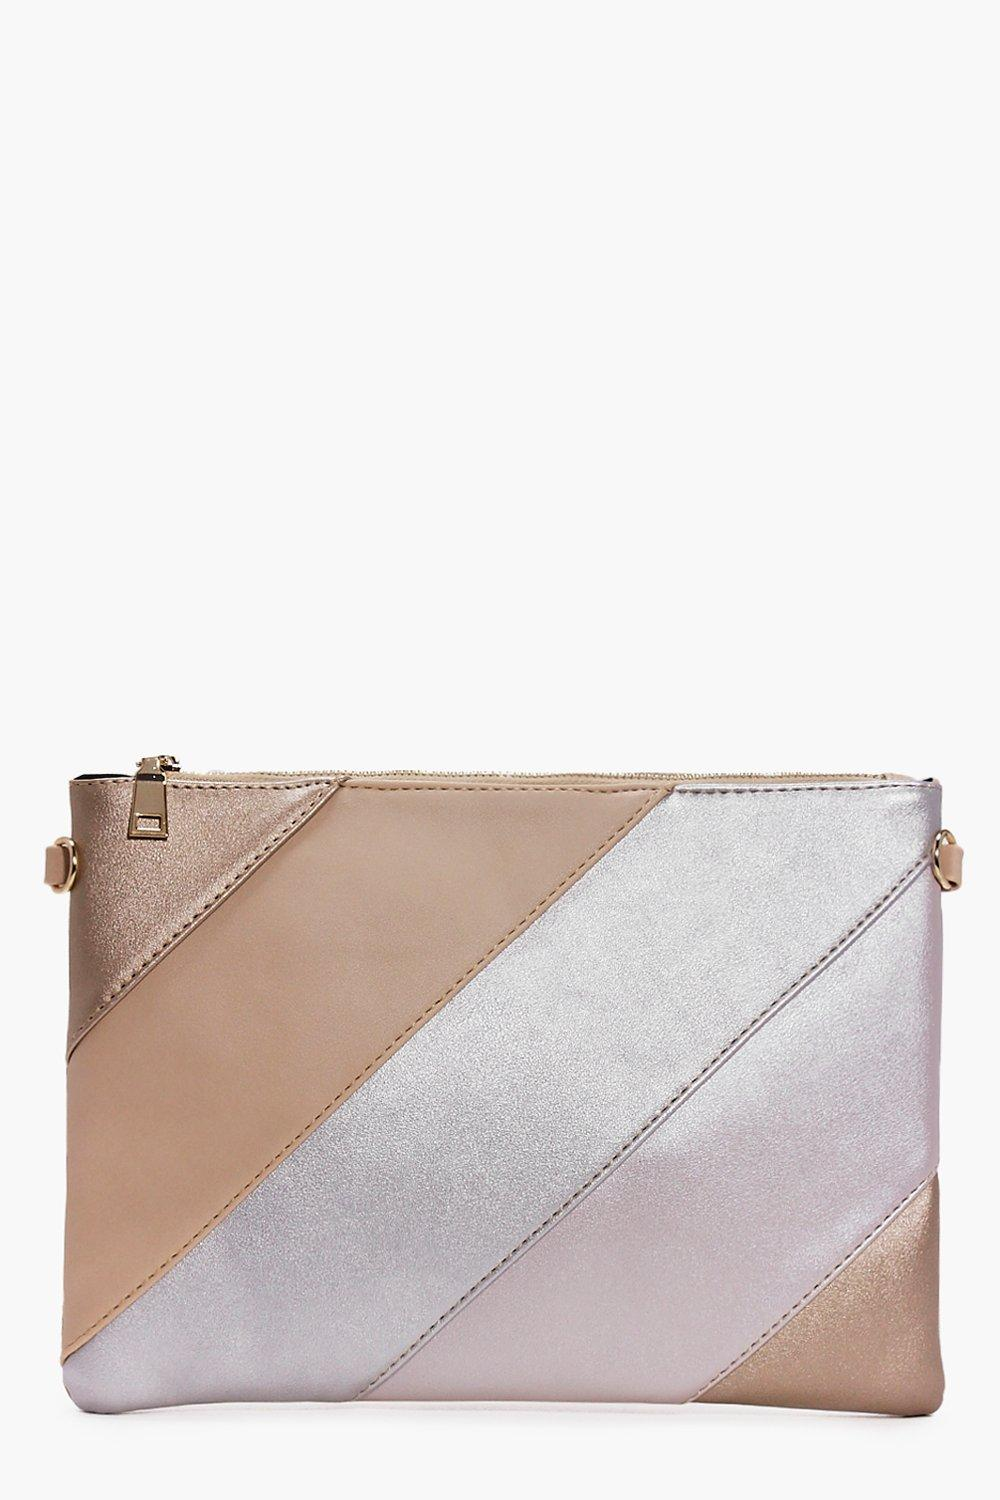 Rose Panelled Metallic Zip Top Clutch Bag